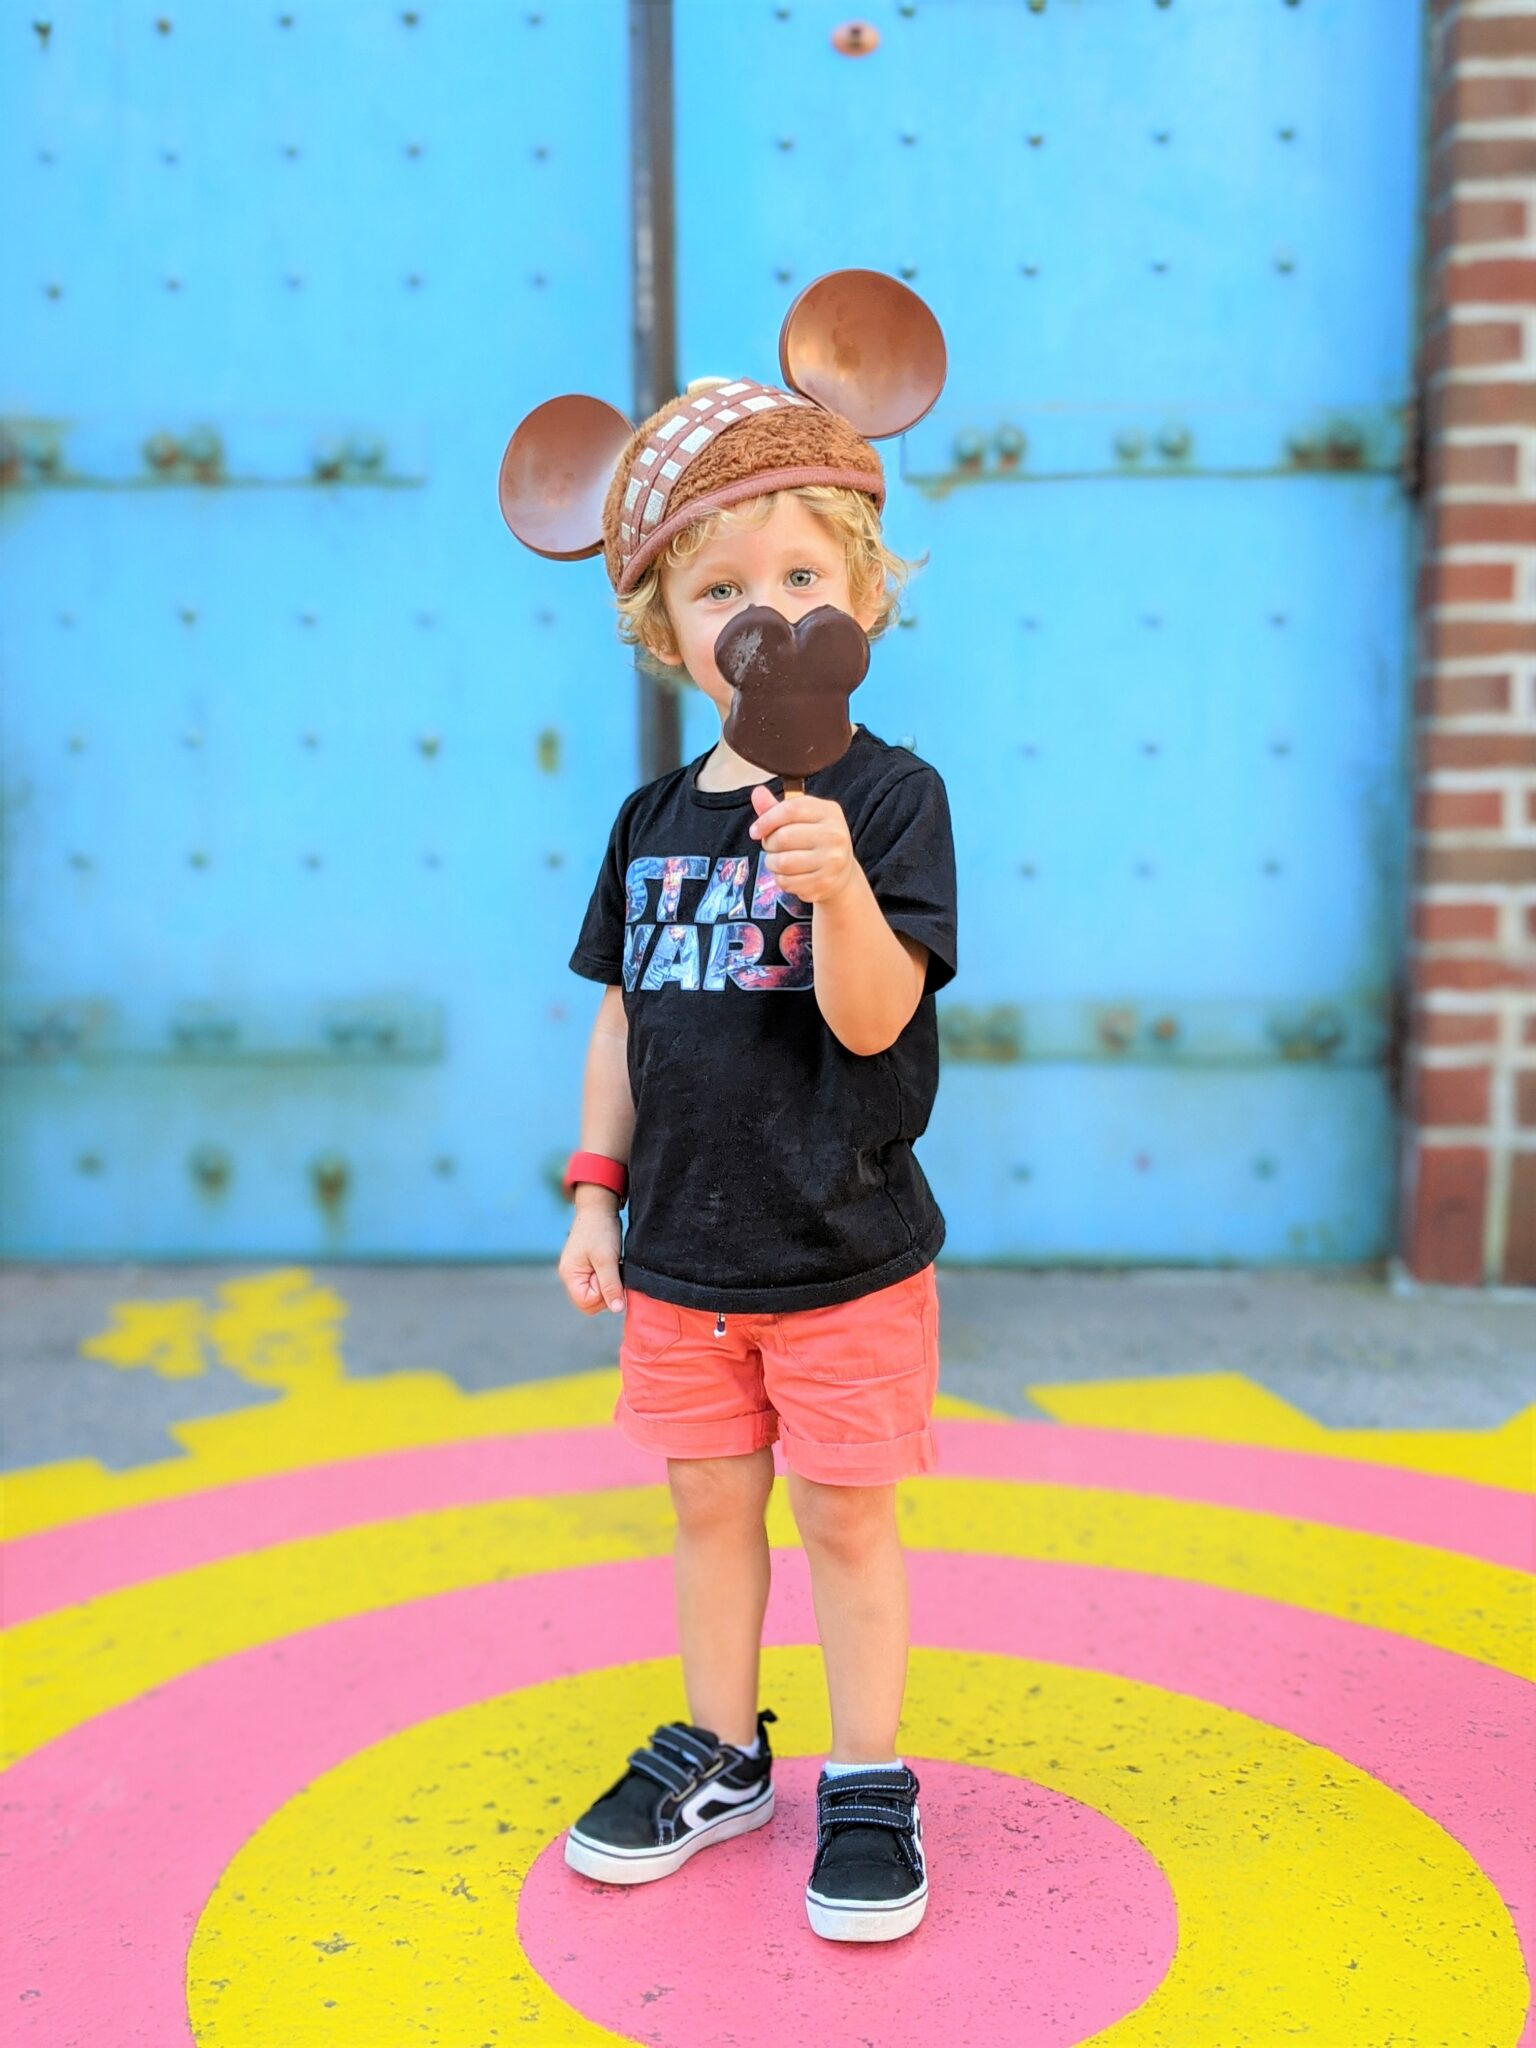 Best Spots for Photos at Walt Disney World All Things with Purpose Sarah Lemp 3